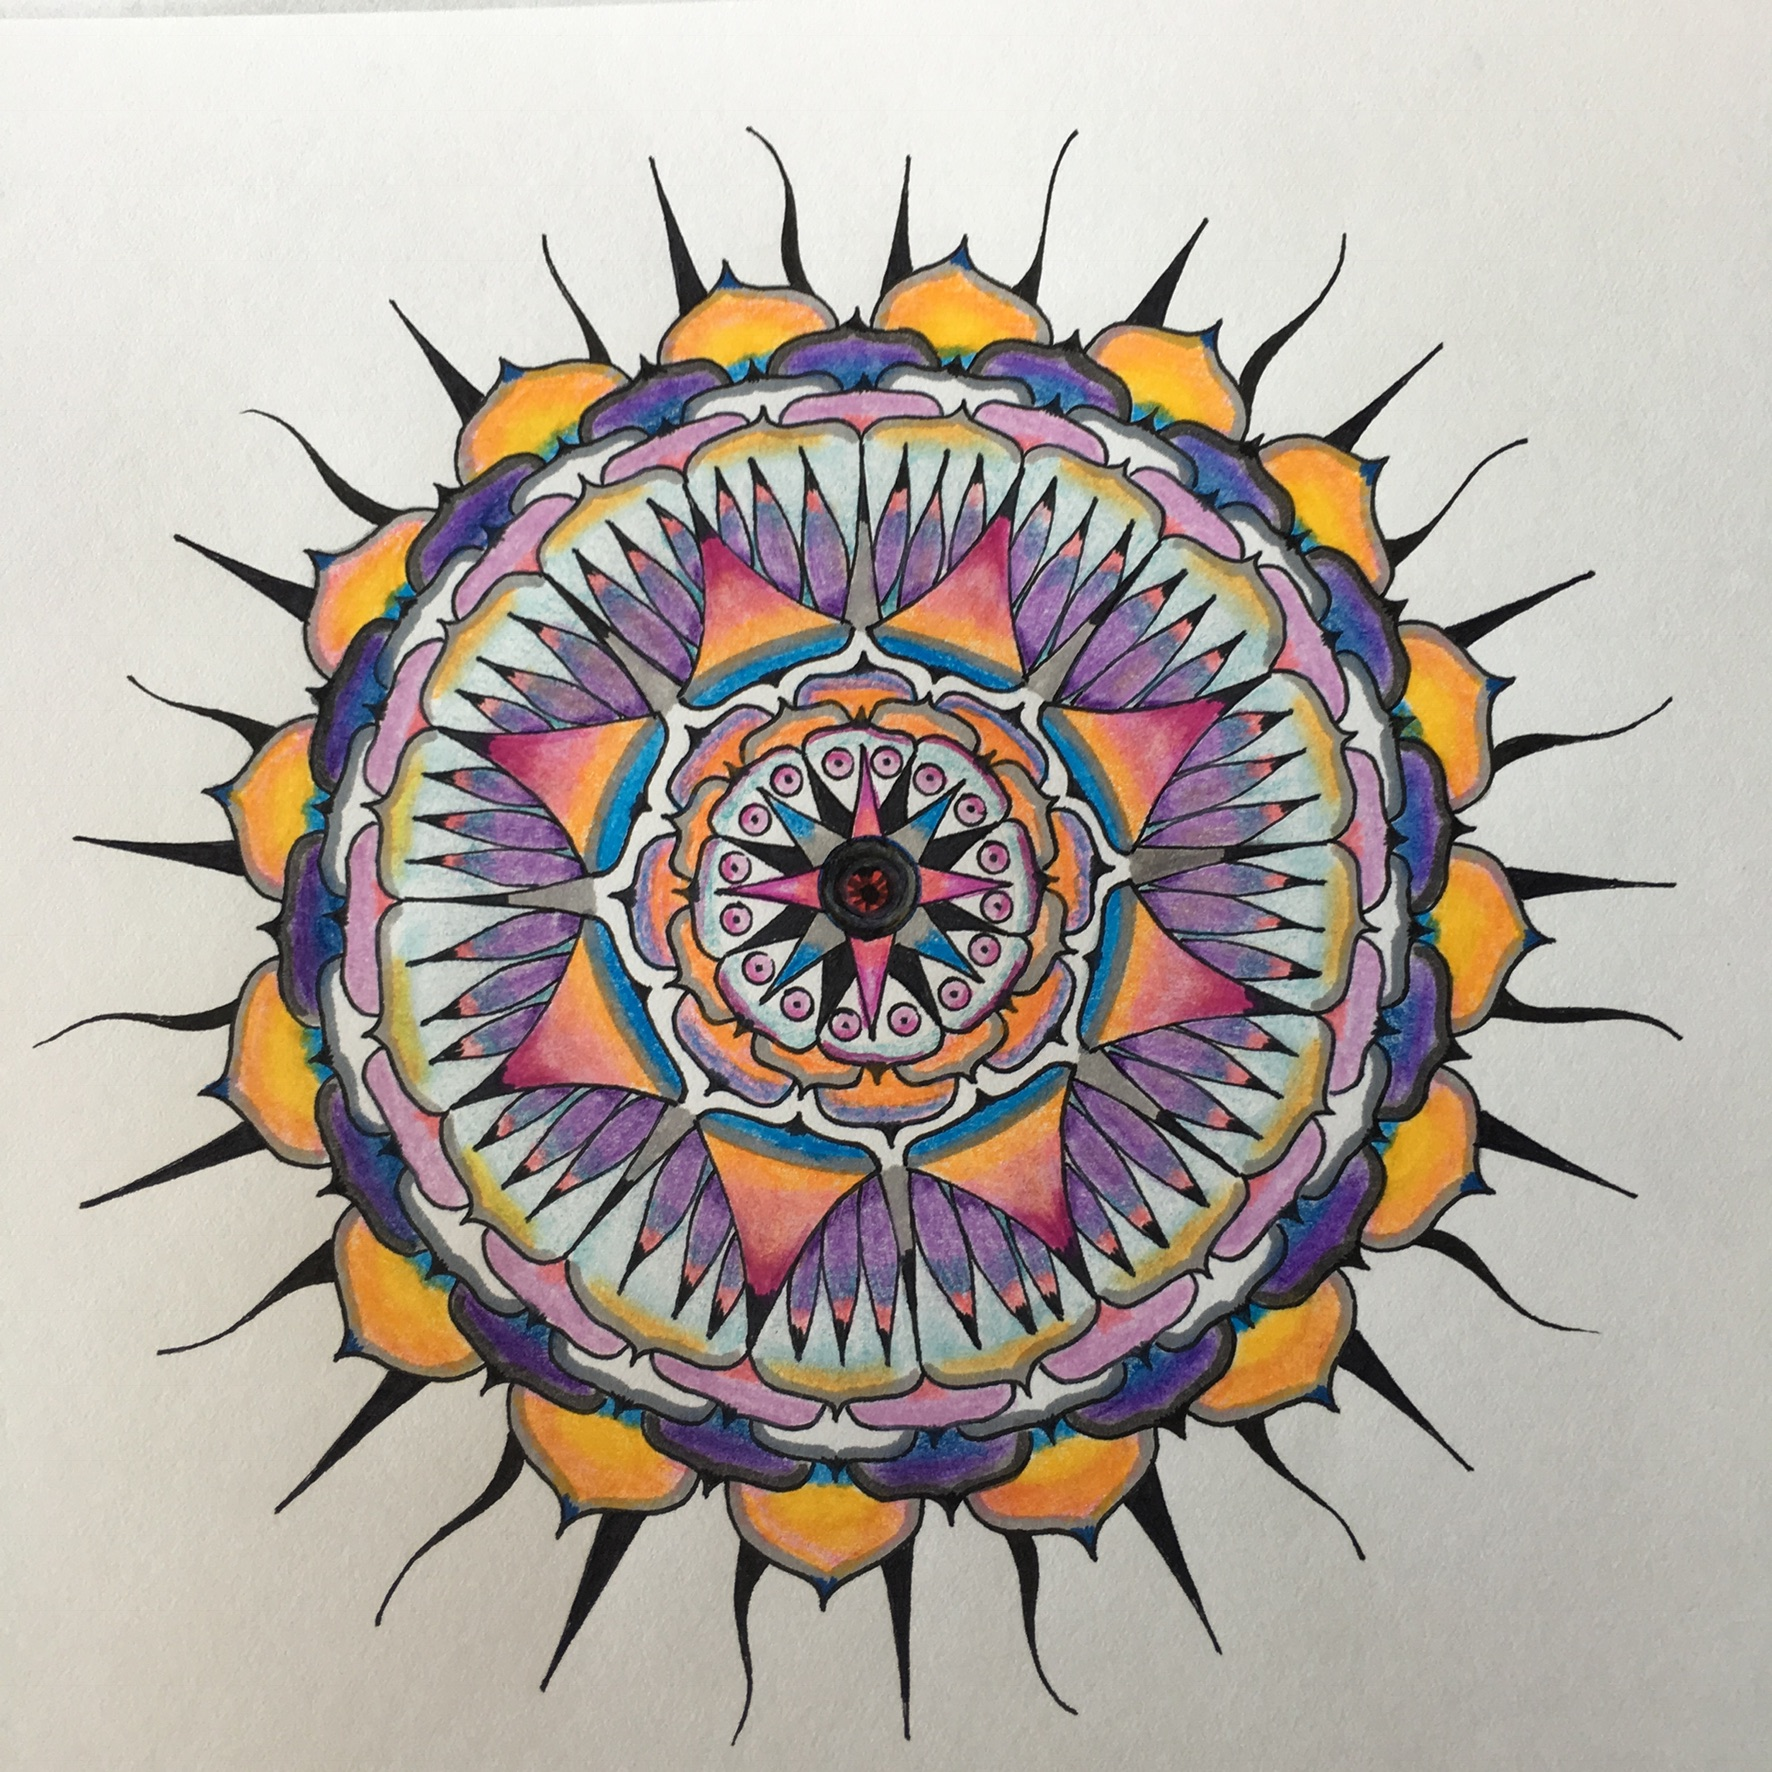 Mandala, 2018, ink and watercolor, in private collection